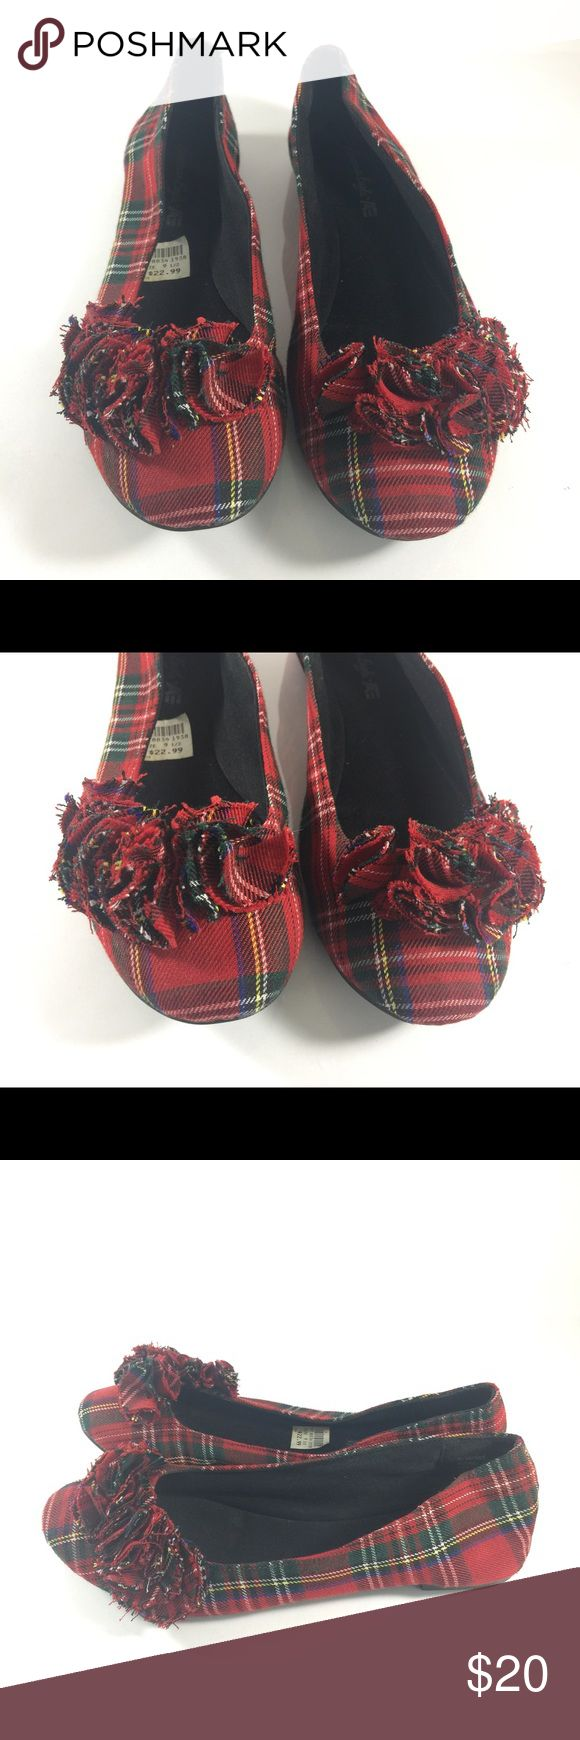 American Eagle Red Plaid Ballet Flats Size 9.5 Up for sale is this cute pair of American Eagle red plaid ballet flats. Cutout floral petals detailing is simply adorable!  US Women's Size 9.5  Good condition. Some signs of wear. Please see photographs. American Eagle Outfitters Shoes Flats & Loafers